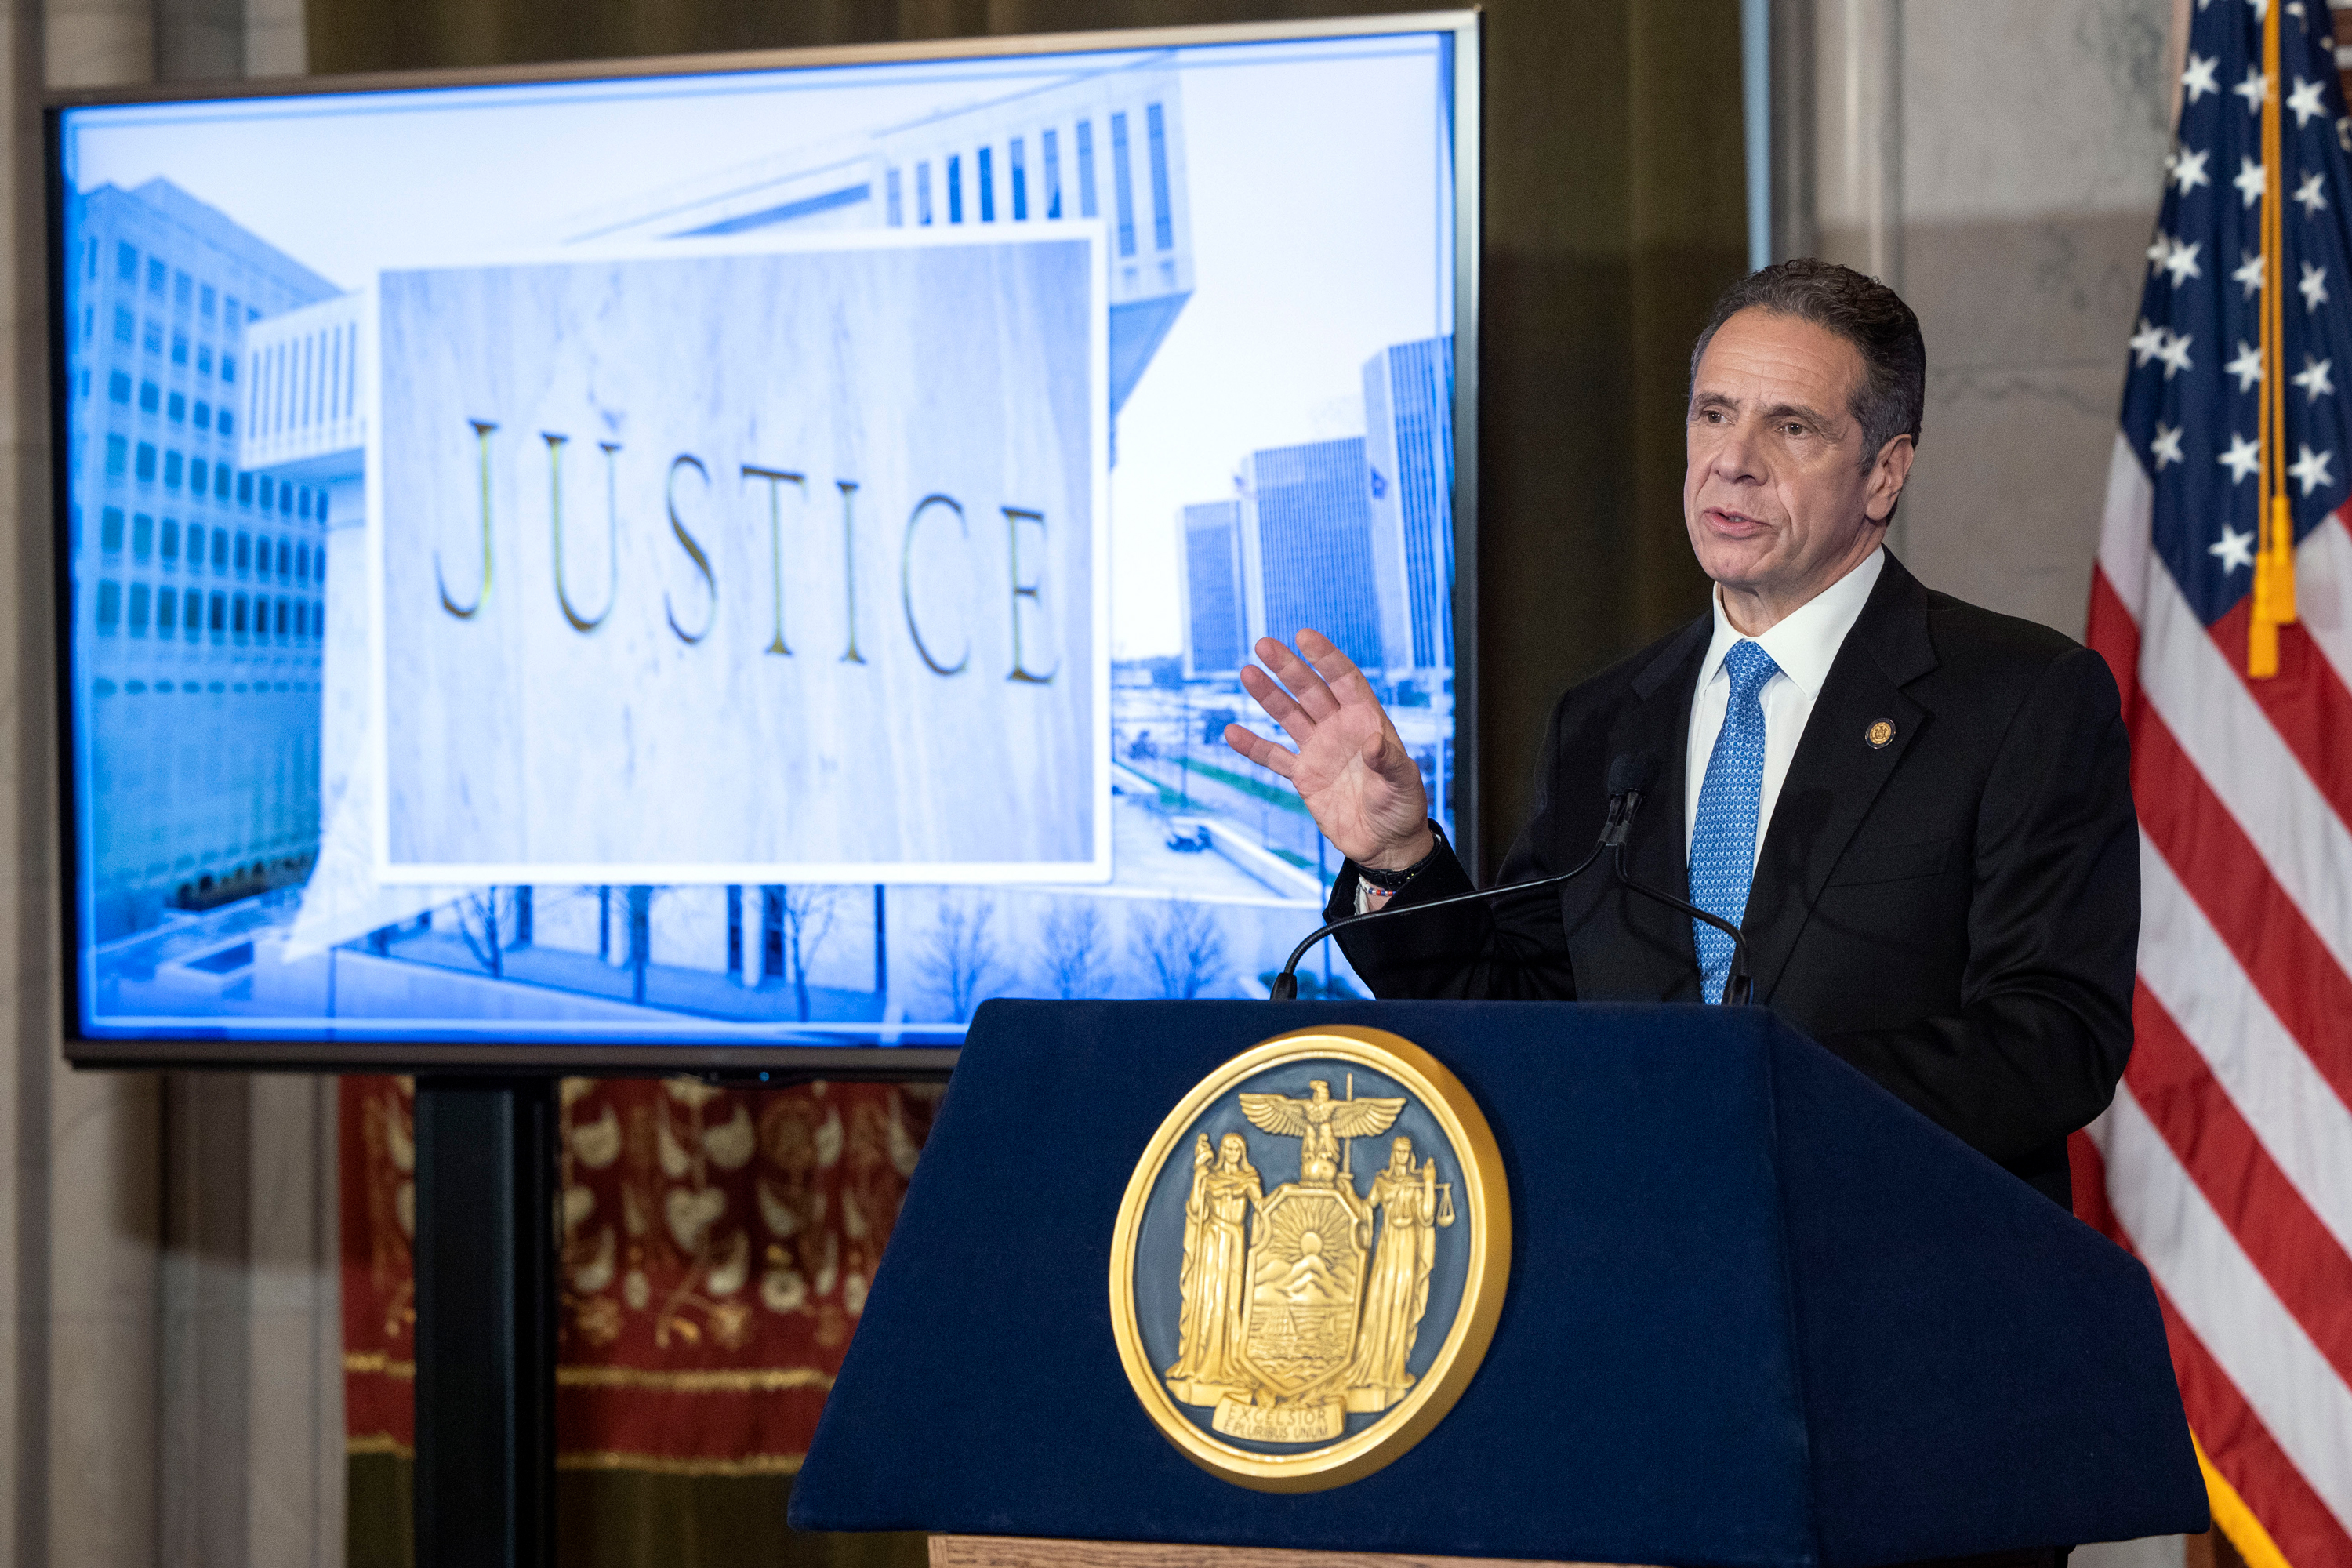 Governor Andrew Cuomo delivers his state budget in Albany, Jan. 19, 2021.